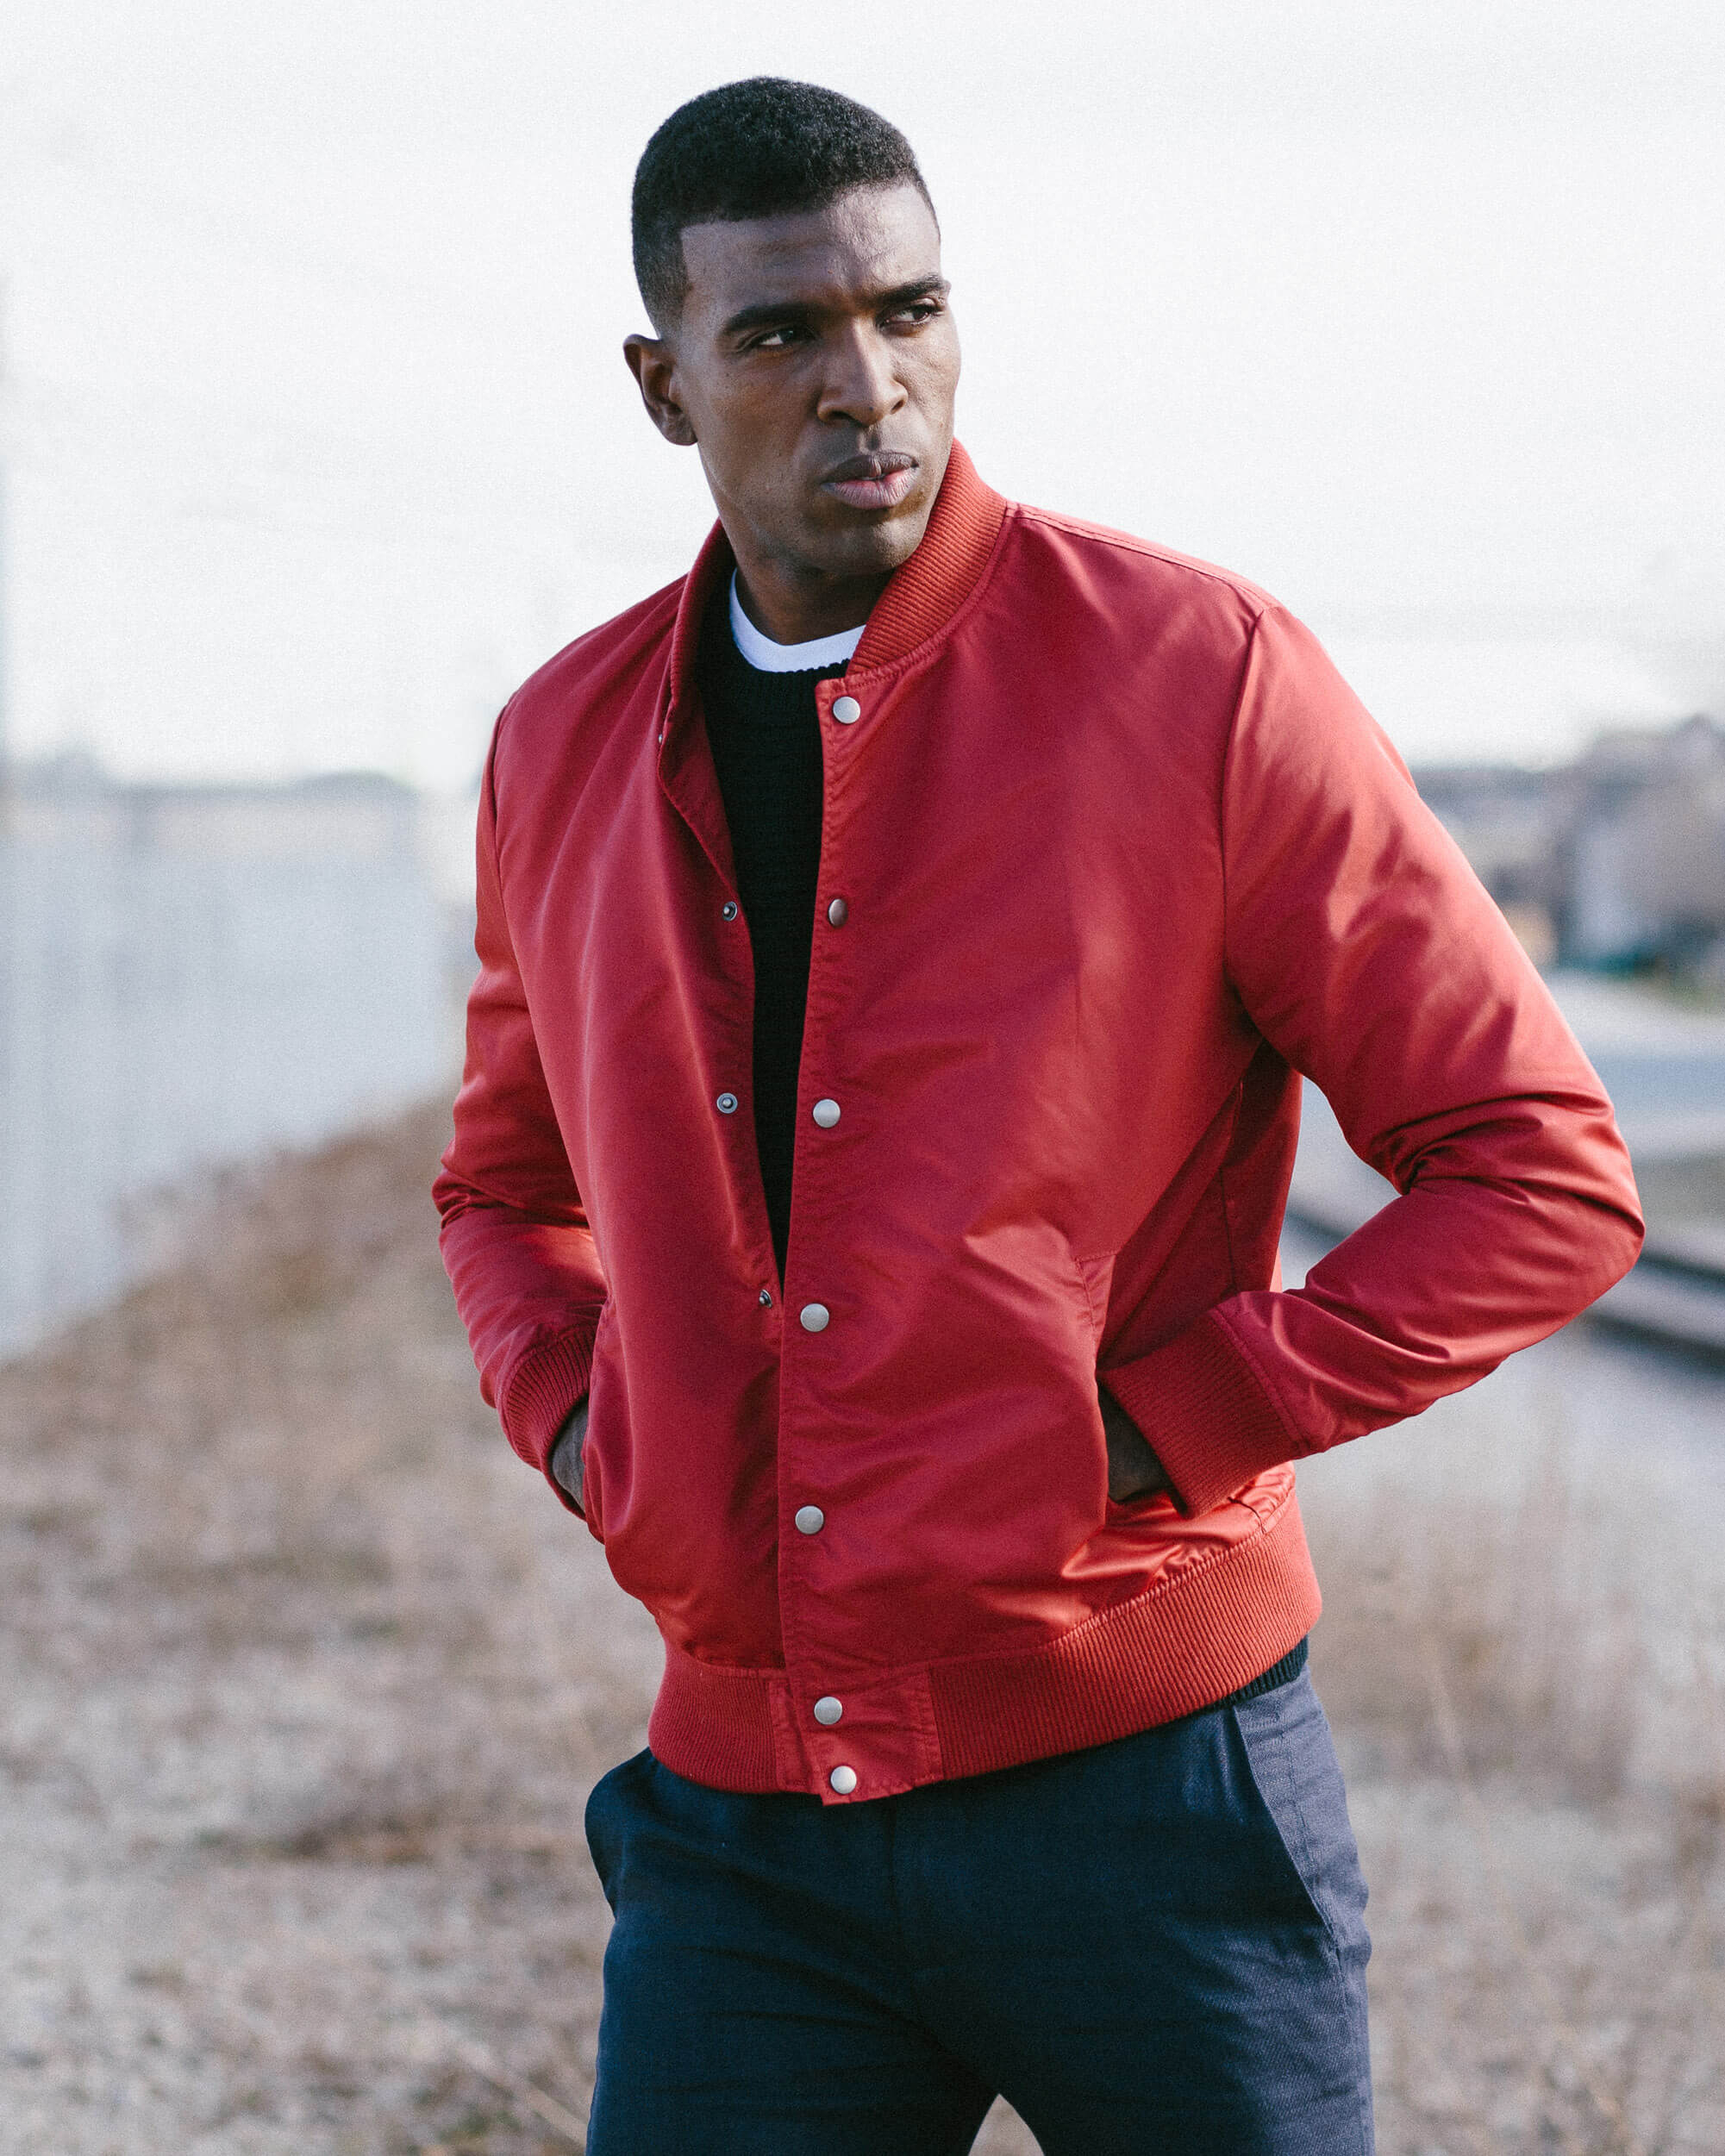 chicago fashion photography of male model wearing red jacket